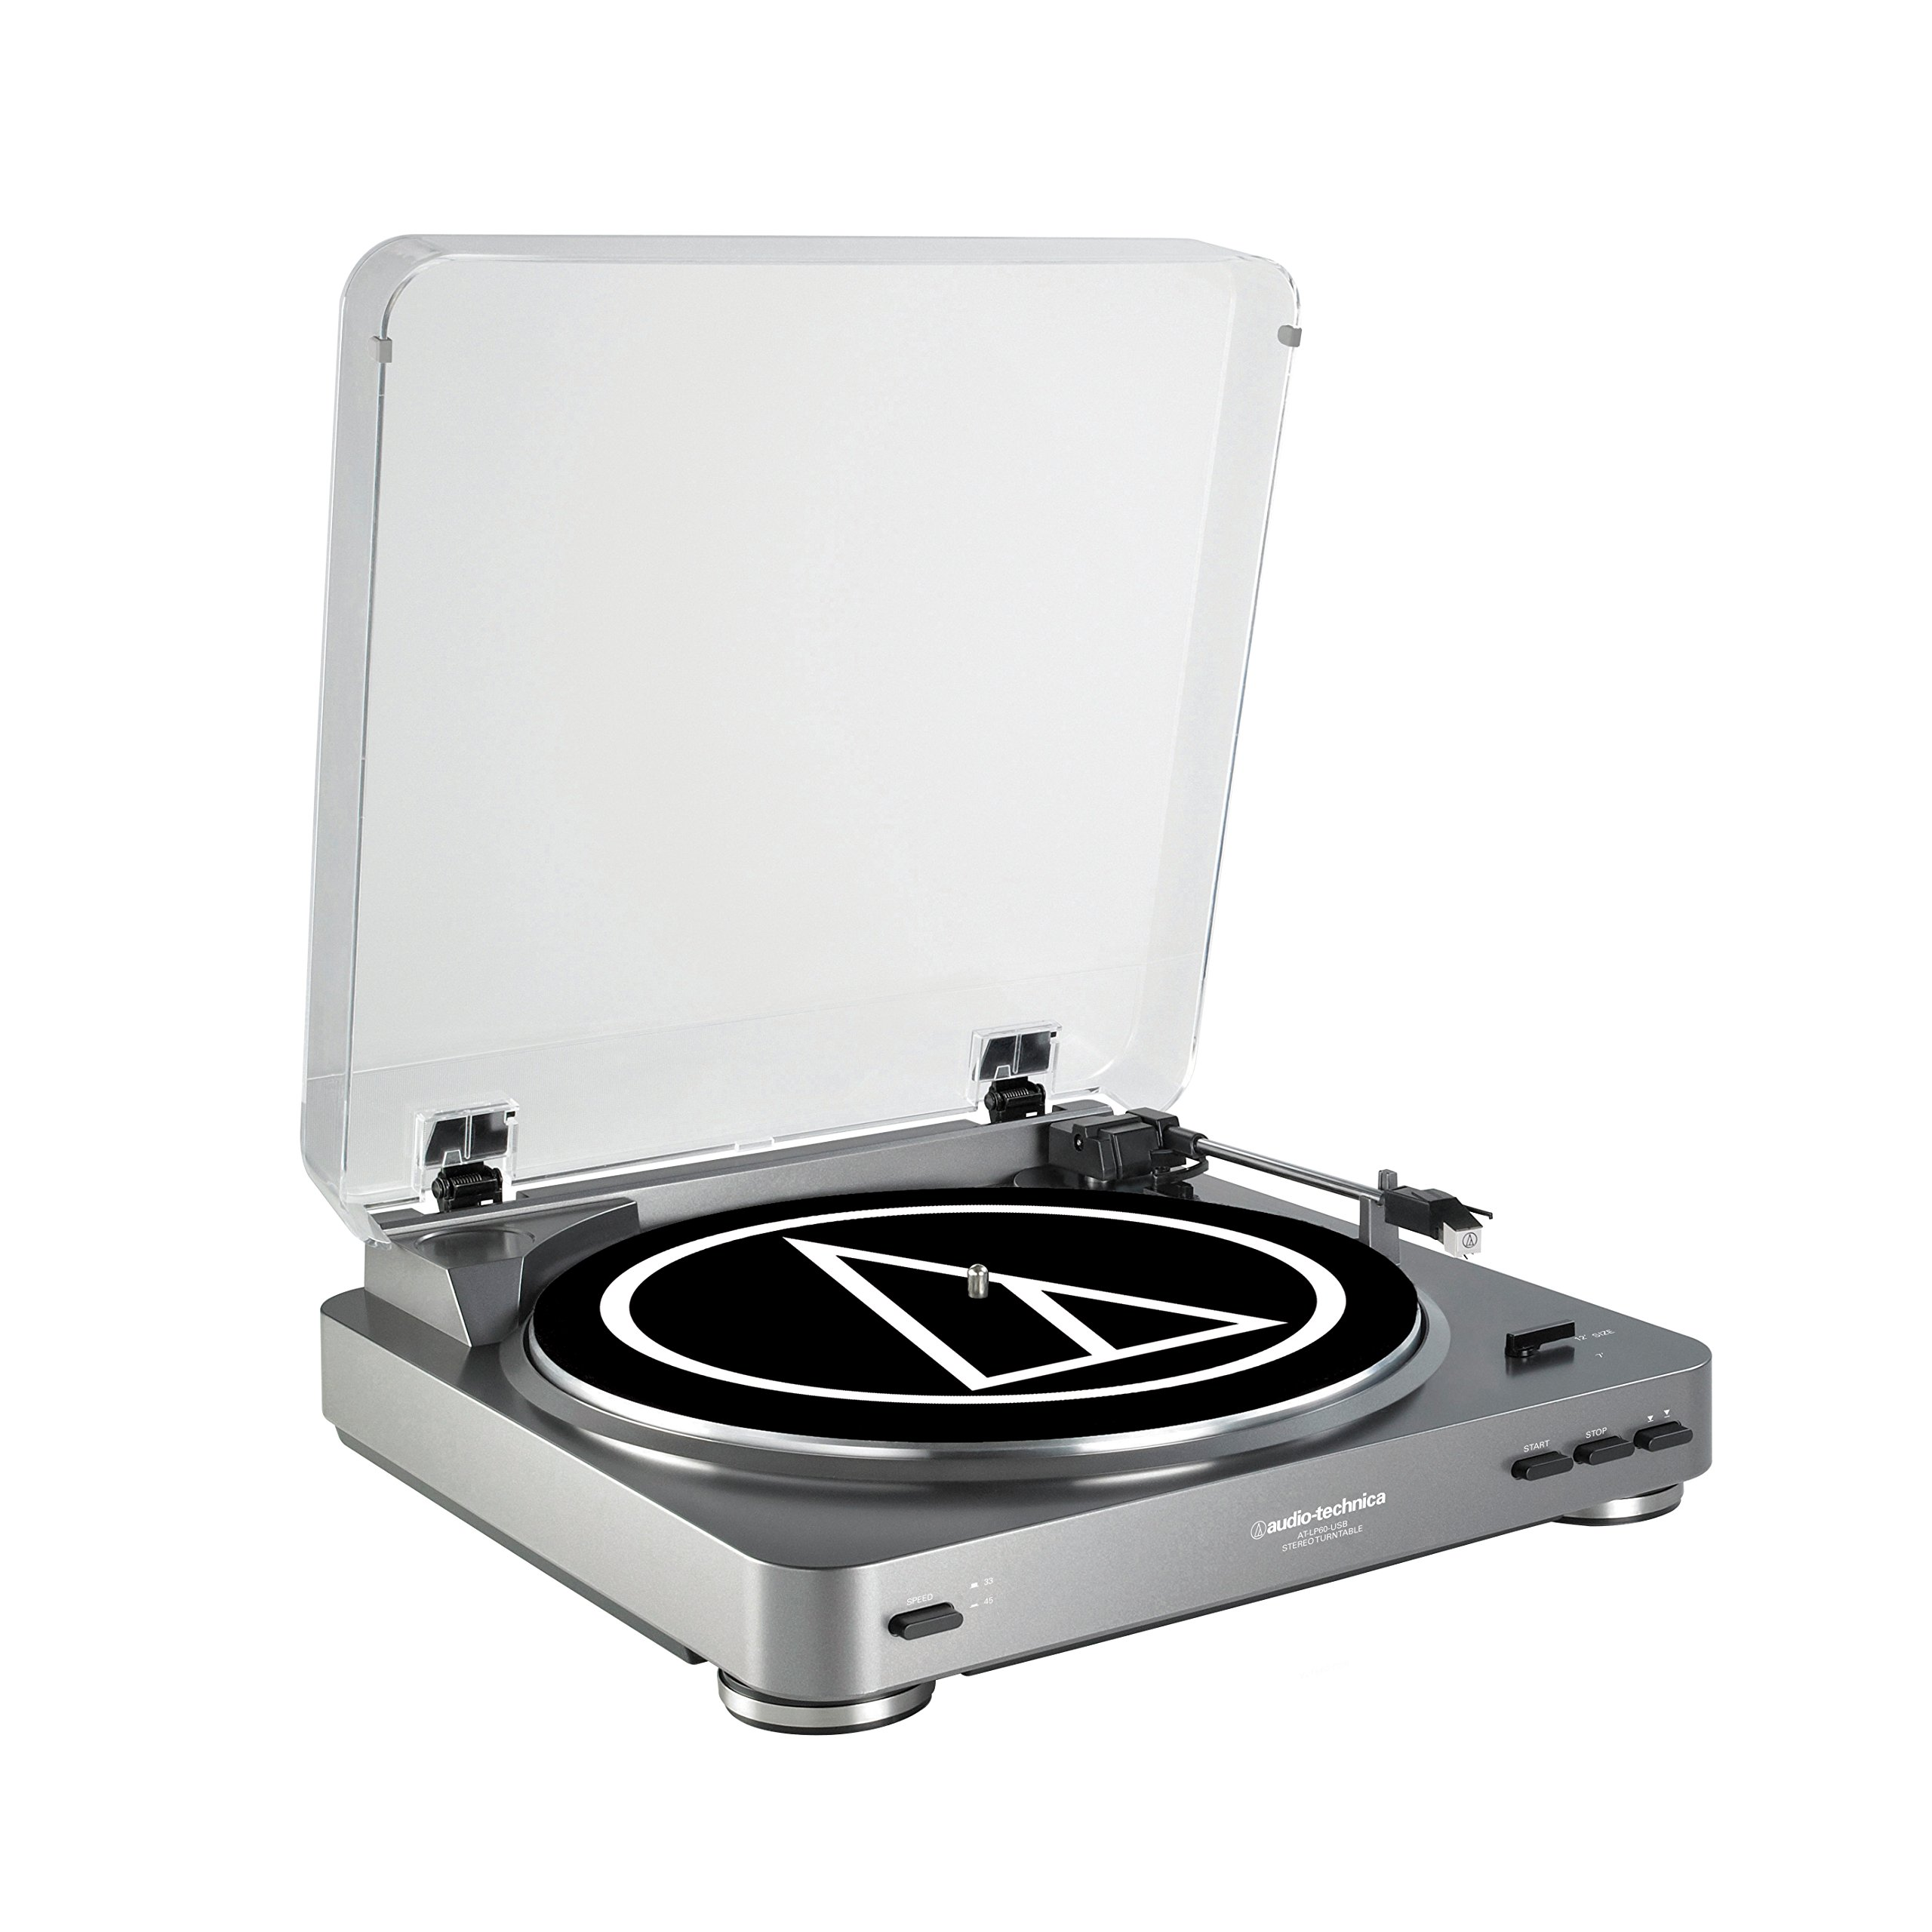 Audio-Technica AT-LP60-USB Fully Automatic Belt-Drive Stereo Turntable (USB & Analog) by Audio-Technica